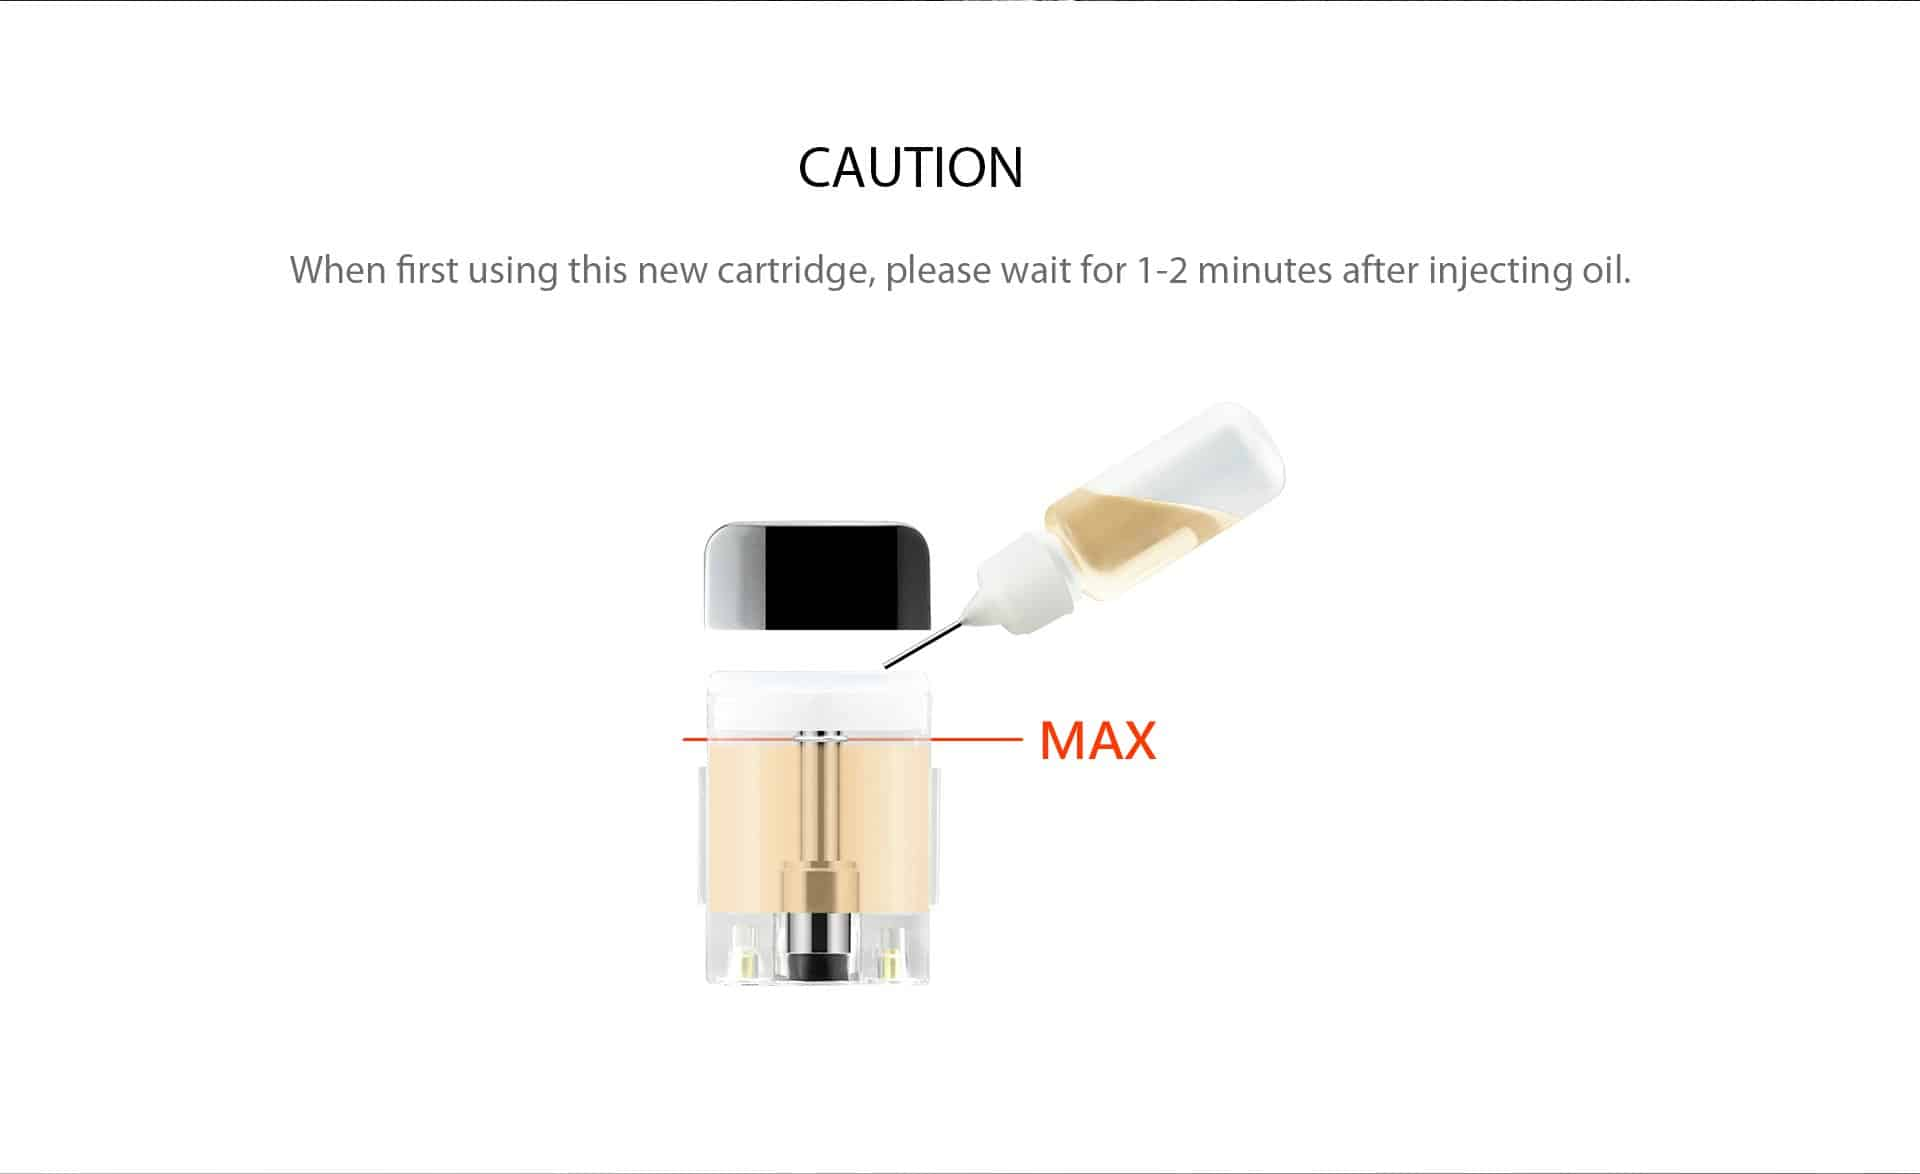 How to fill your Wellon LUX Pod System? When first using your Wellon LUX Pod cartridge, please wait for 1-2 minutes after injecting oil.